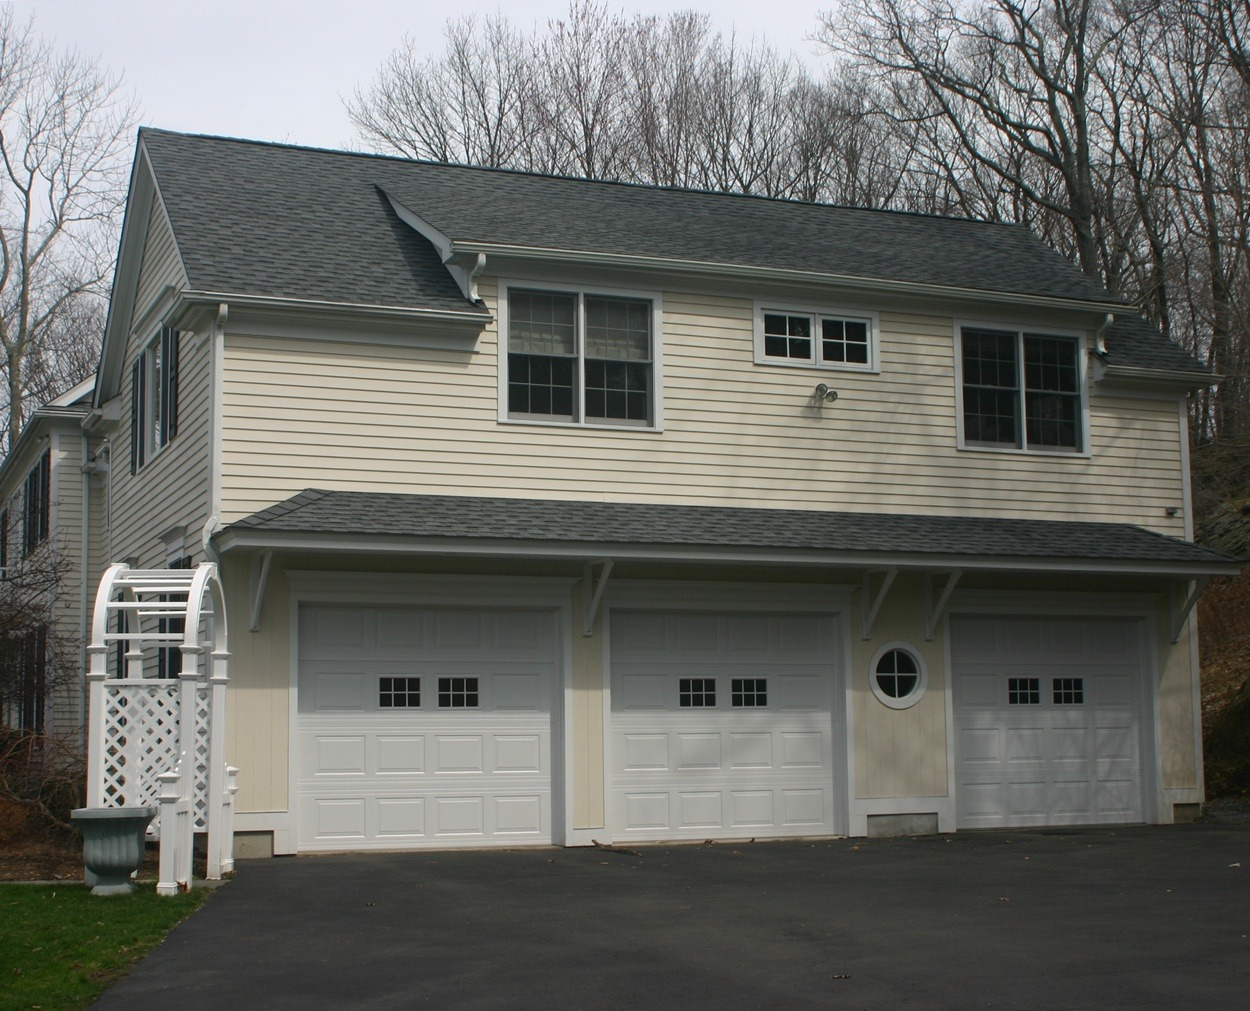 Triple bay garage with a shed dormer and interesting windows.